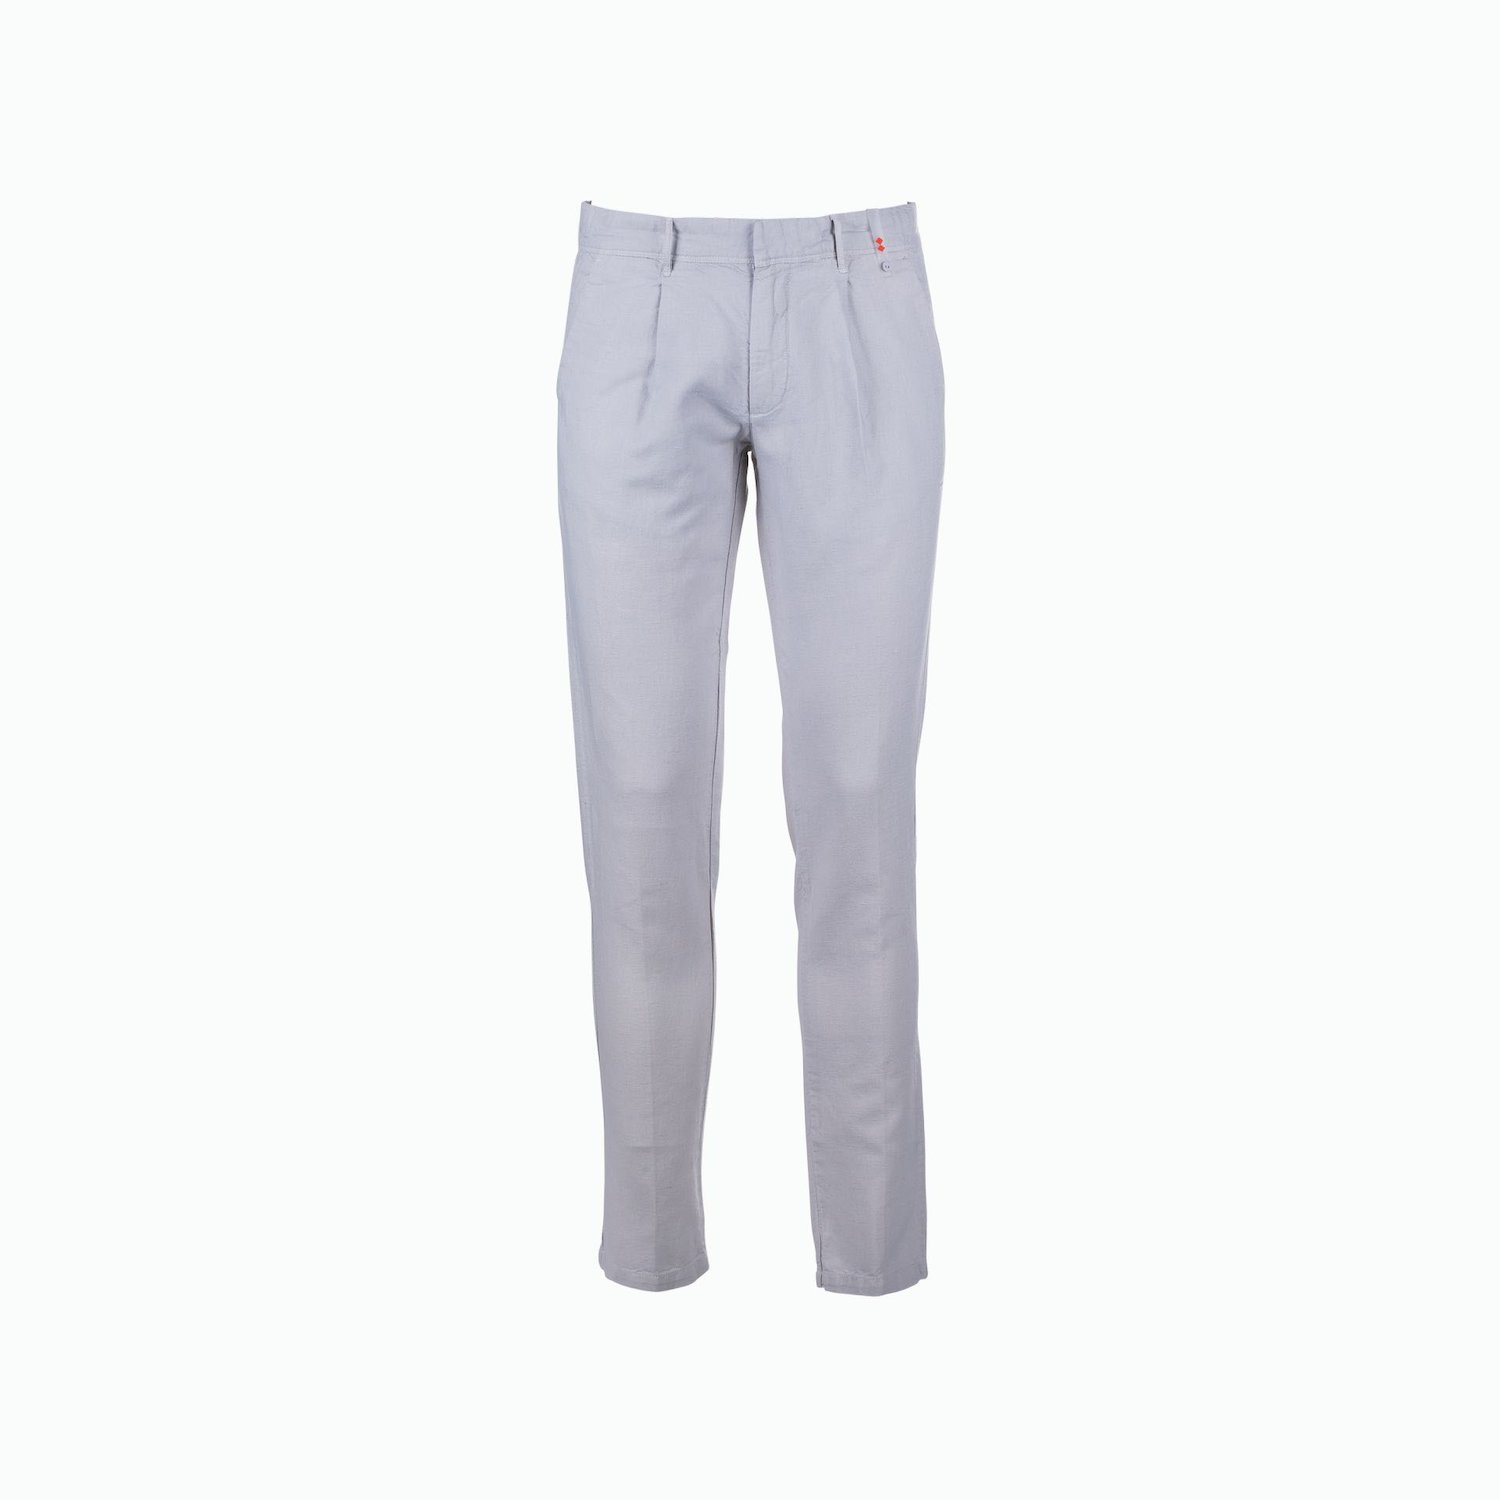 C57 Trousers - Fog Grey